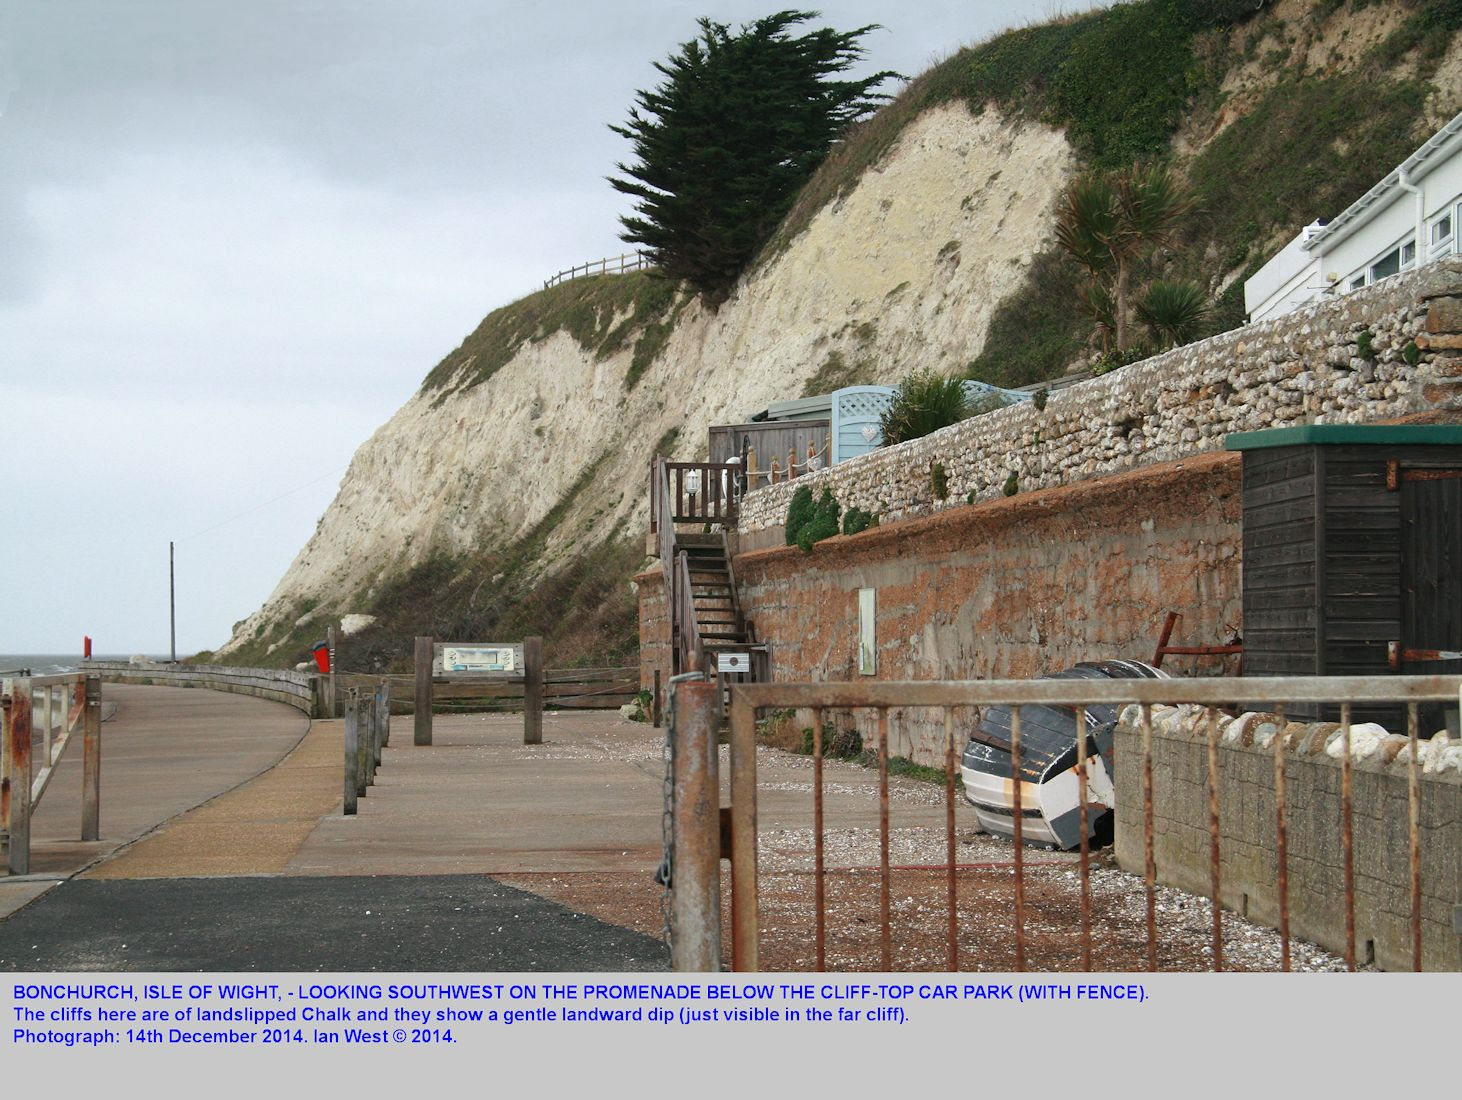 Cliffs of landslide-displaced, landward-dipping Chalk debris, below the car park at Bonchurch, Isle of Wight, 14th December 2014, Ian West